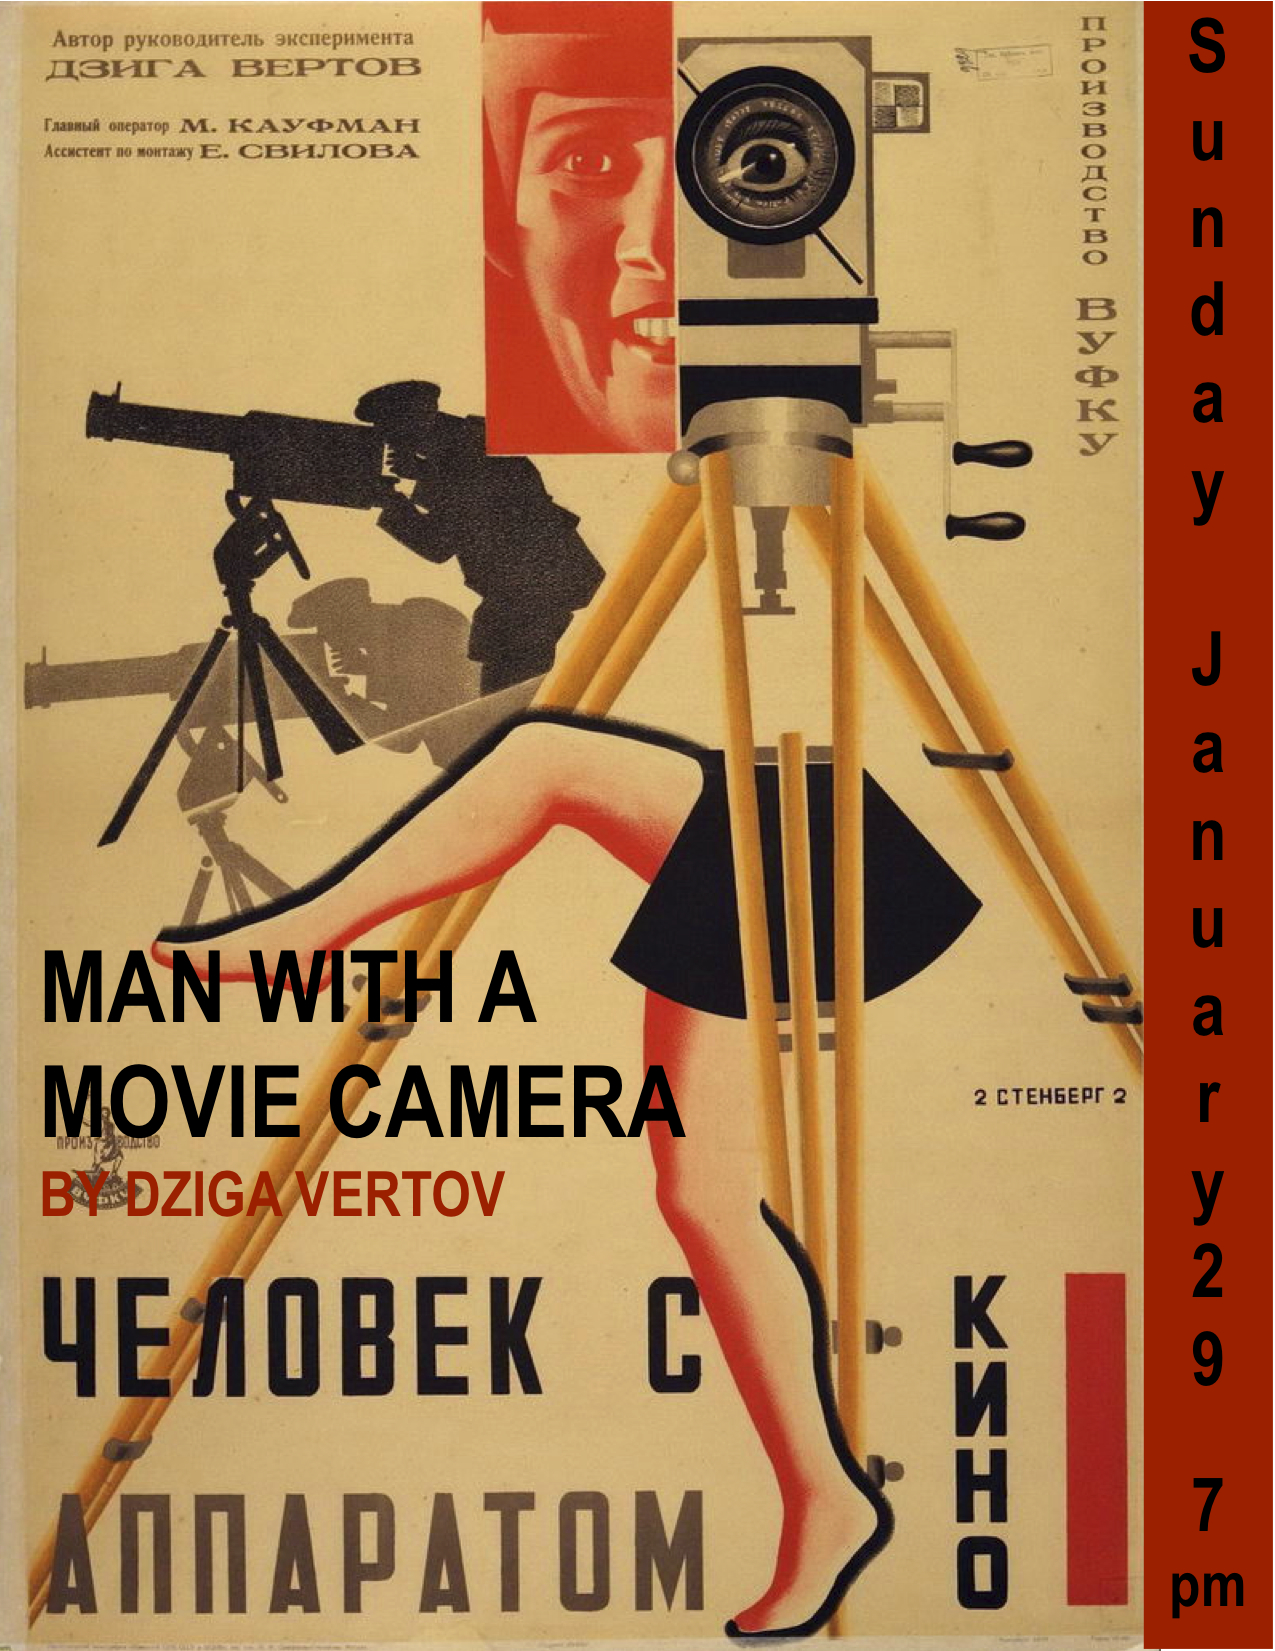 pman-with-a-movie-camera-january-29.jpg